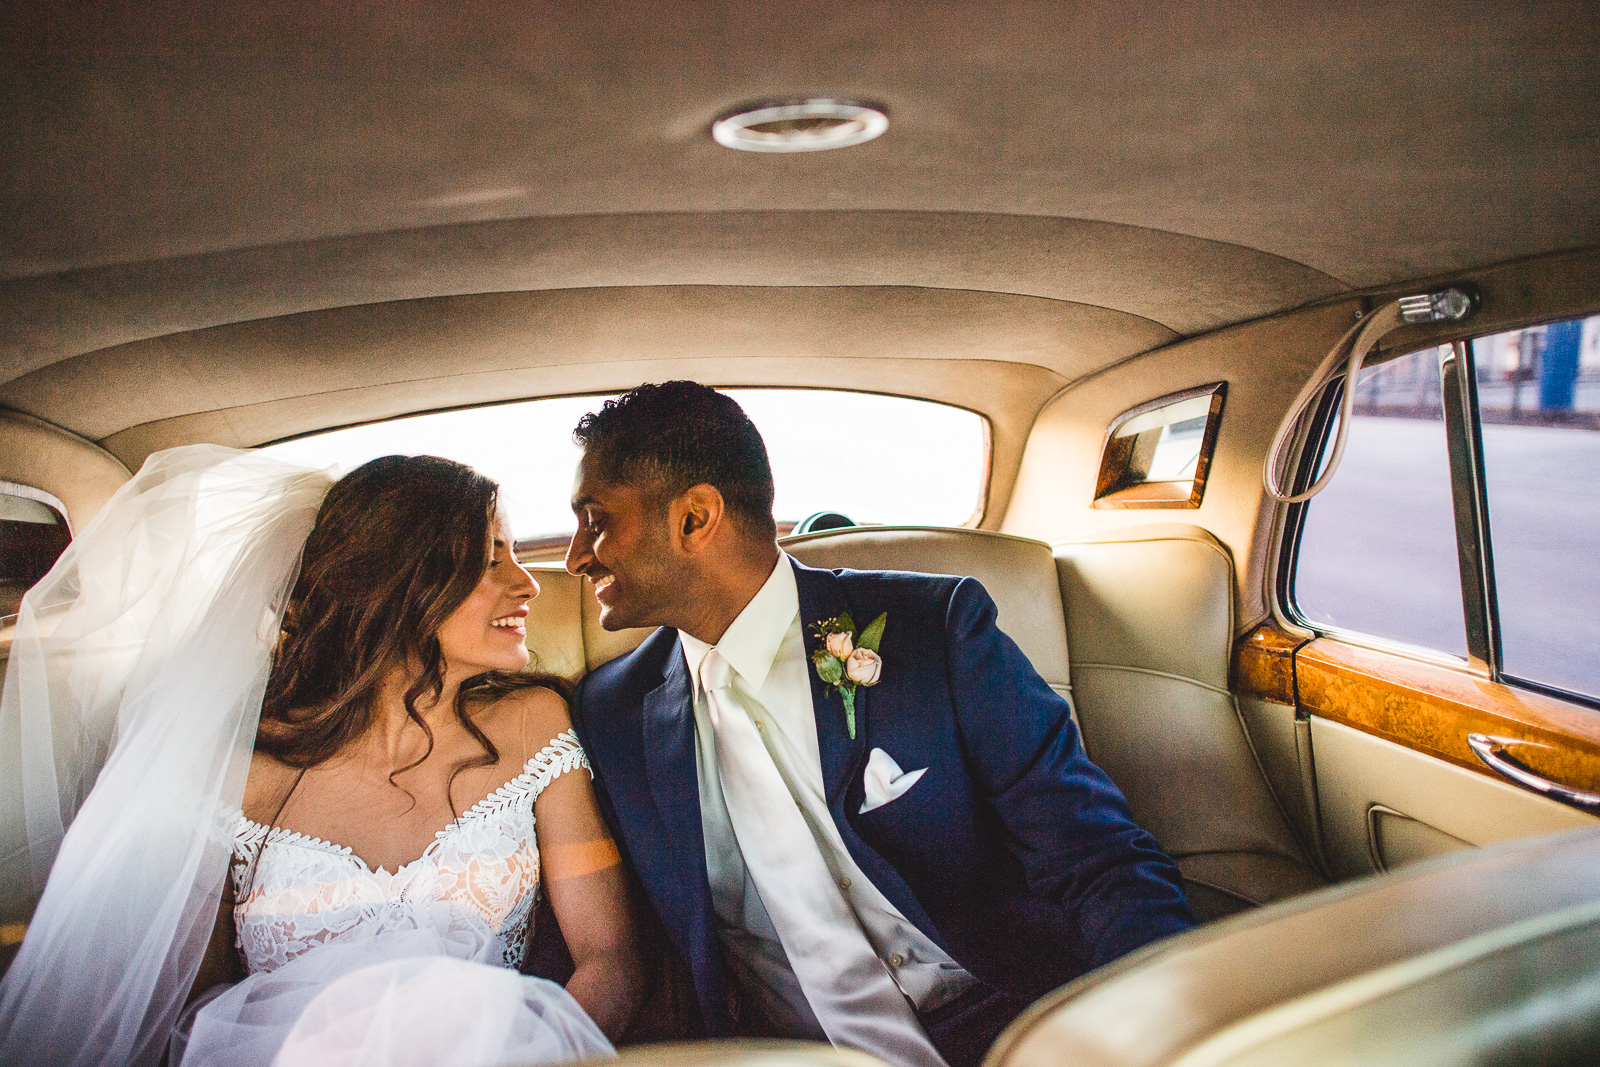 10 chicago wedding photographer best portraits during weddings review 1 - 2018 in Review // My Favorite Chicago Wedding Photography Portraits